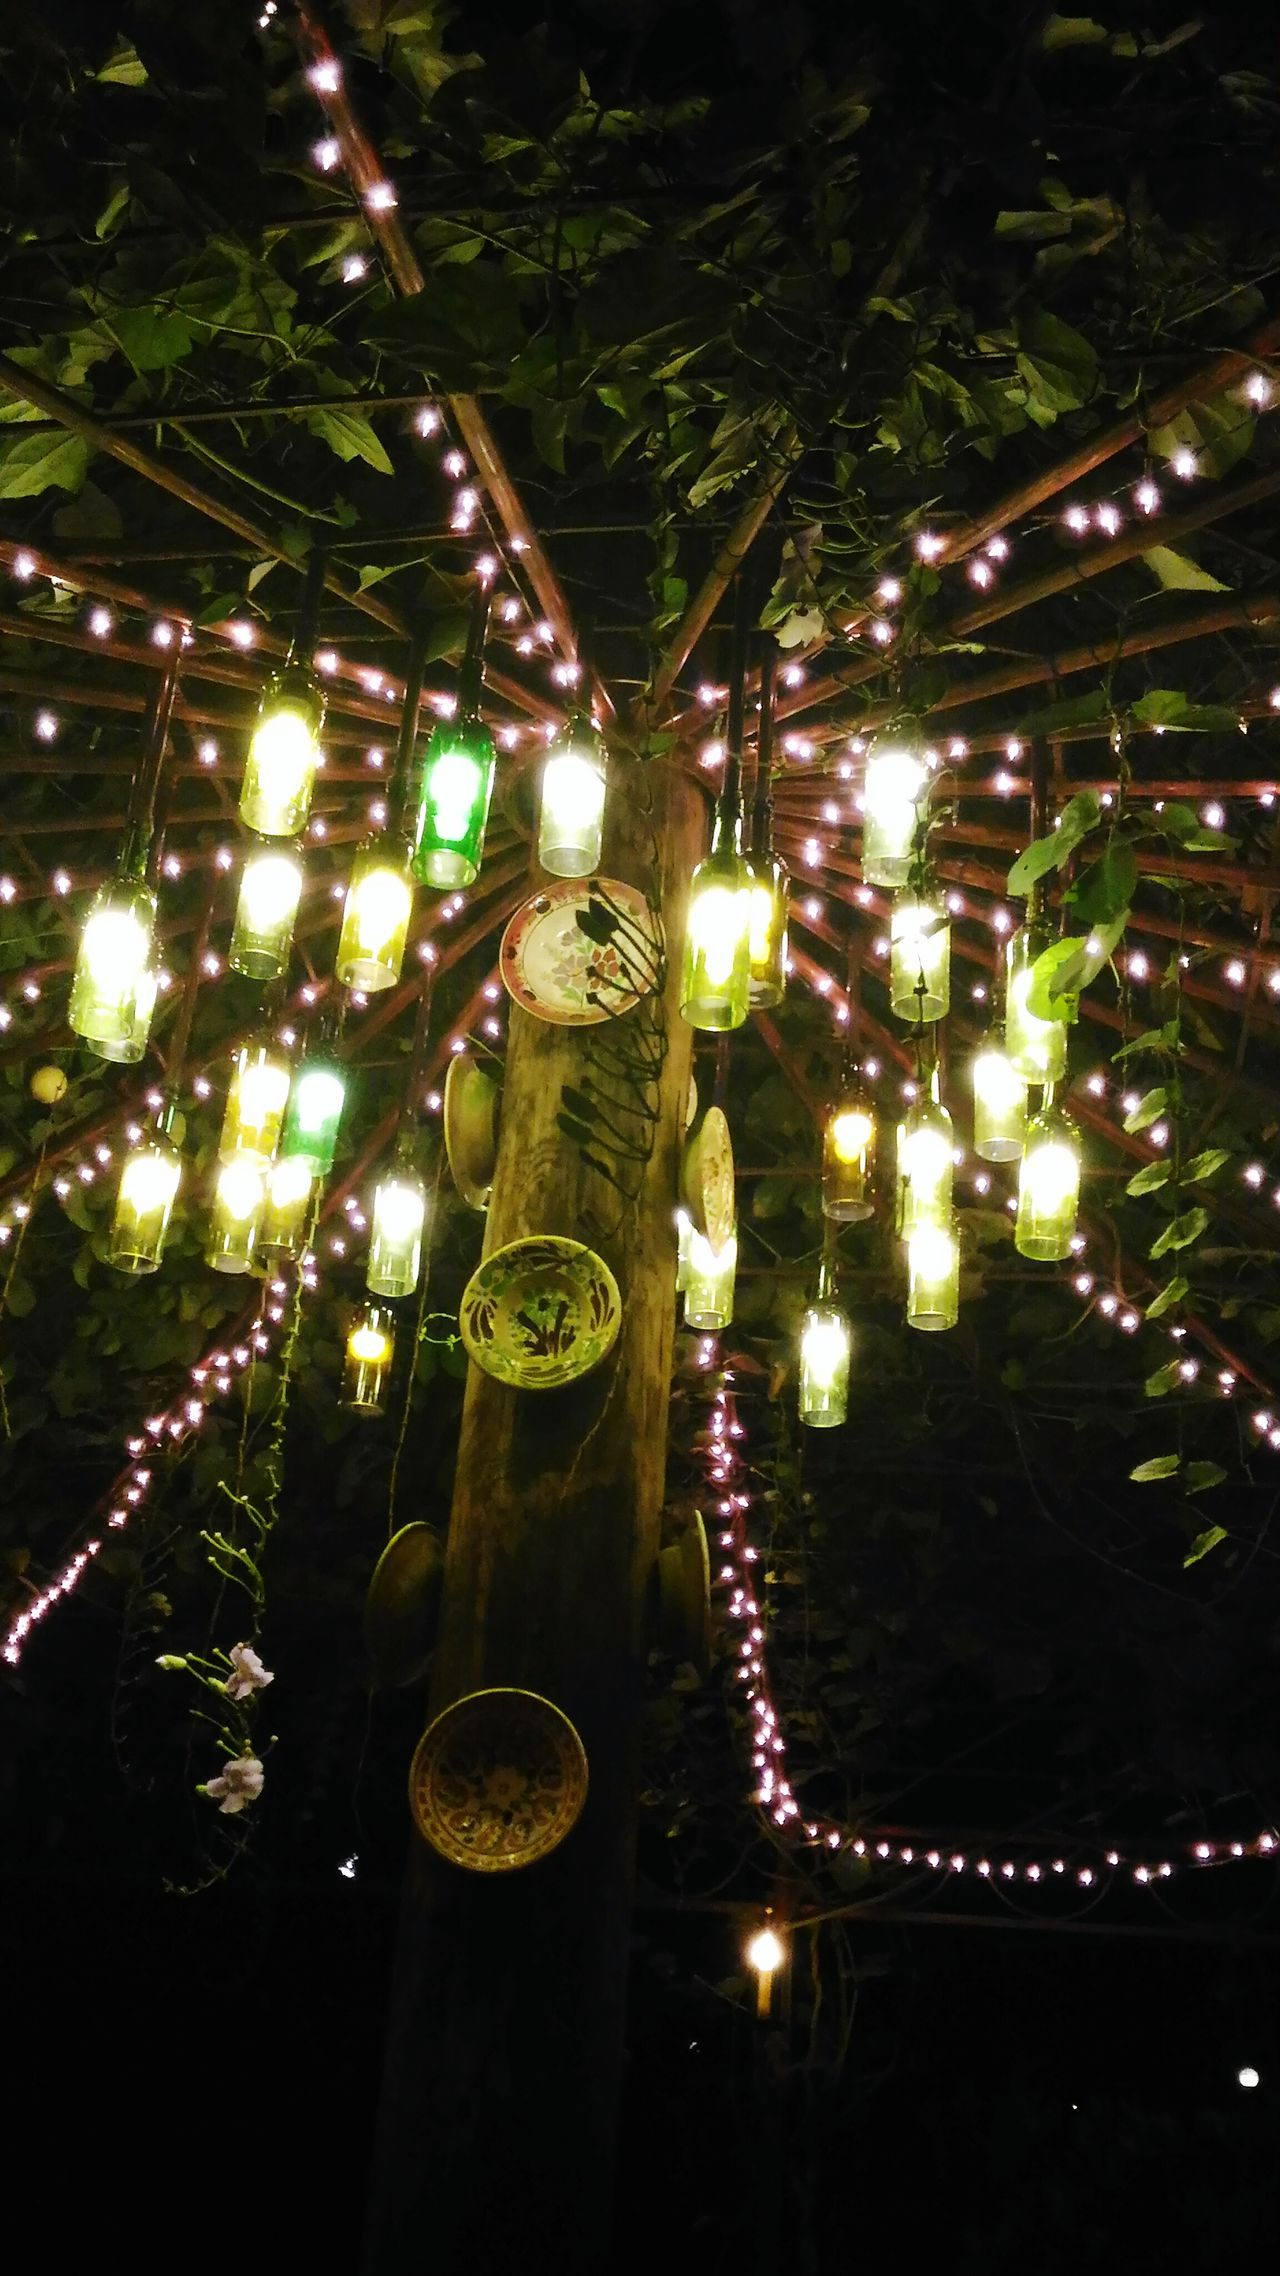 Lights Bottles Showcase June Bottle Lamps Hanging Bottle Lamps Tree With Lights Garden Tagaytay, Philippines